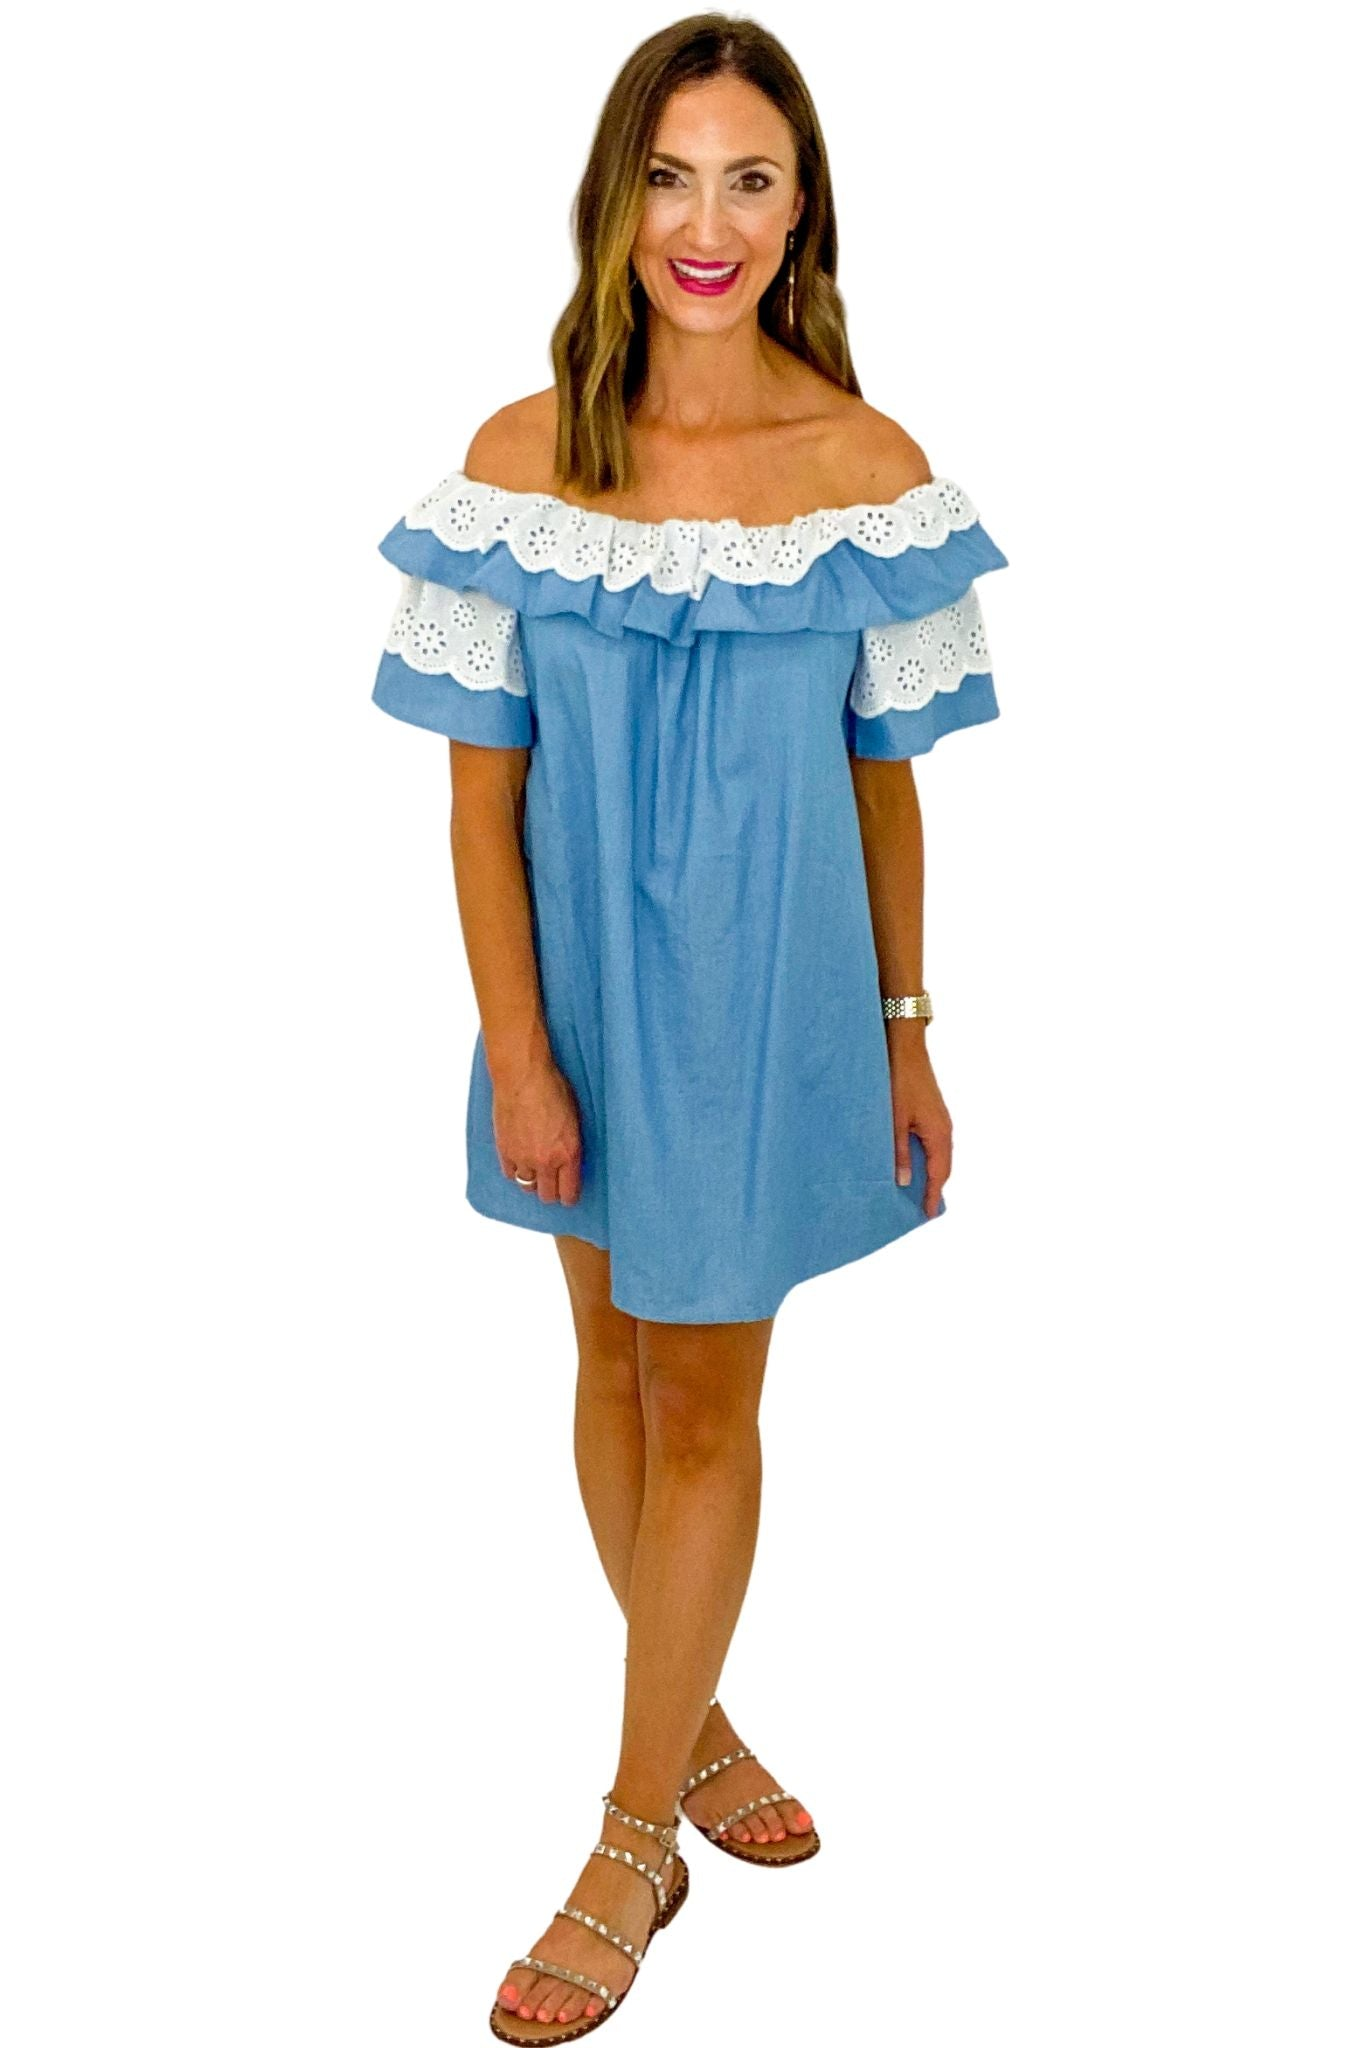 Off the Shoulder Denim Dress w/ Eyelet Trim *FINAL SALE*